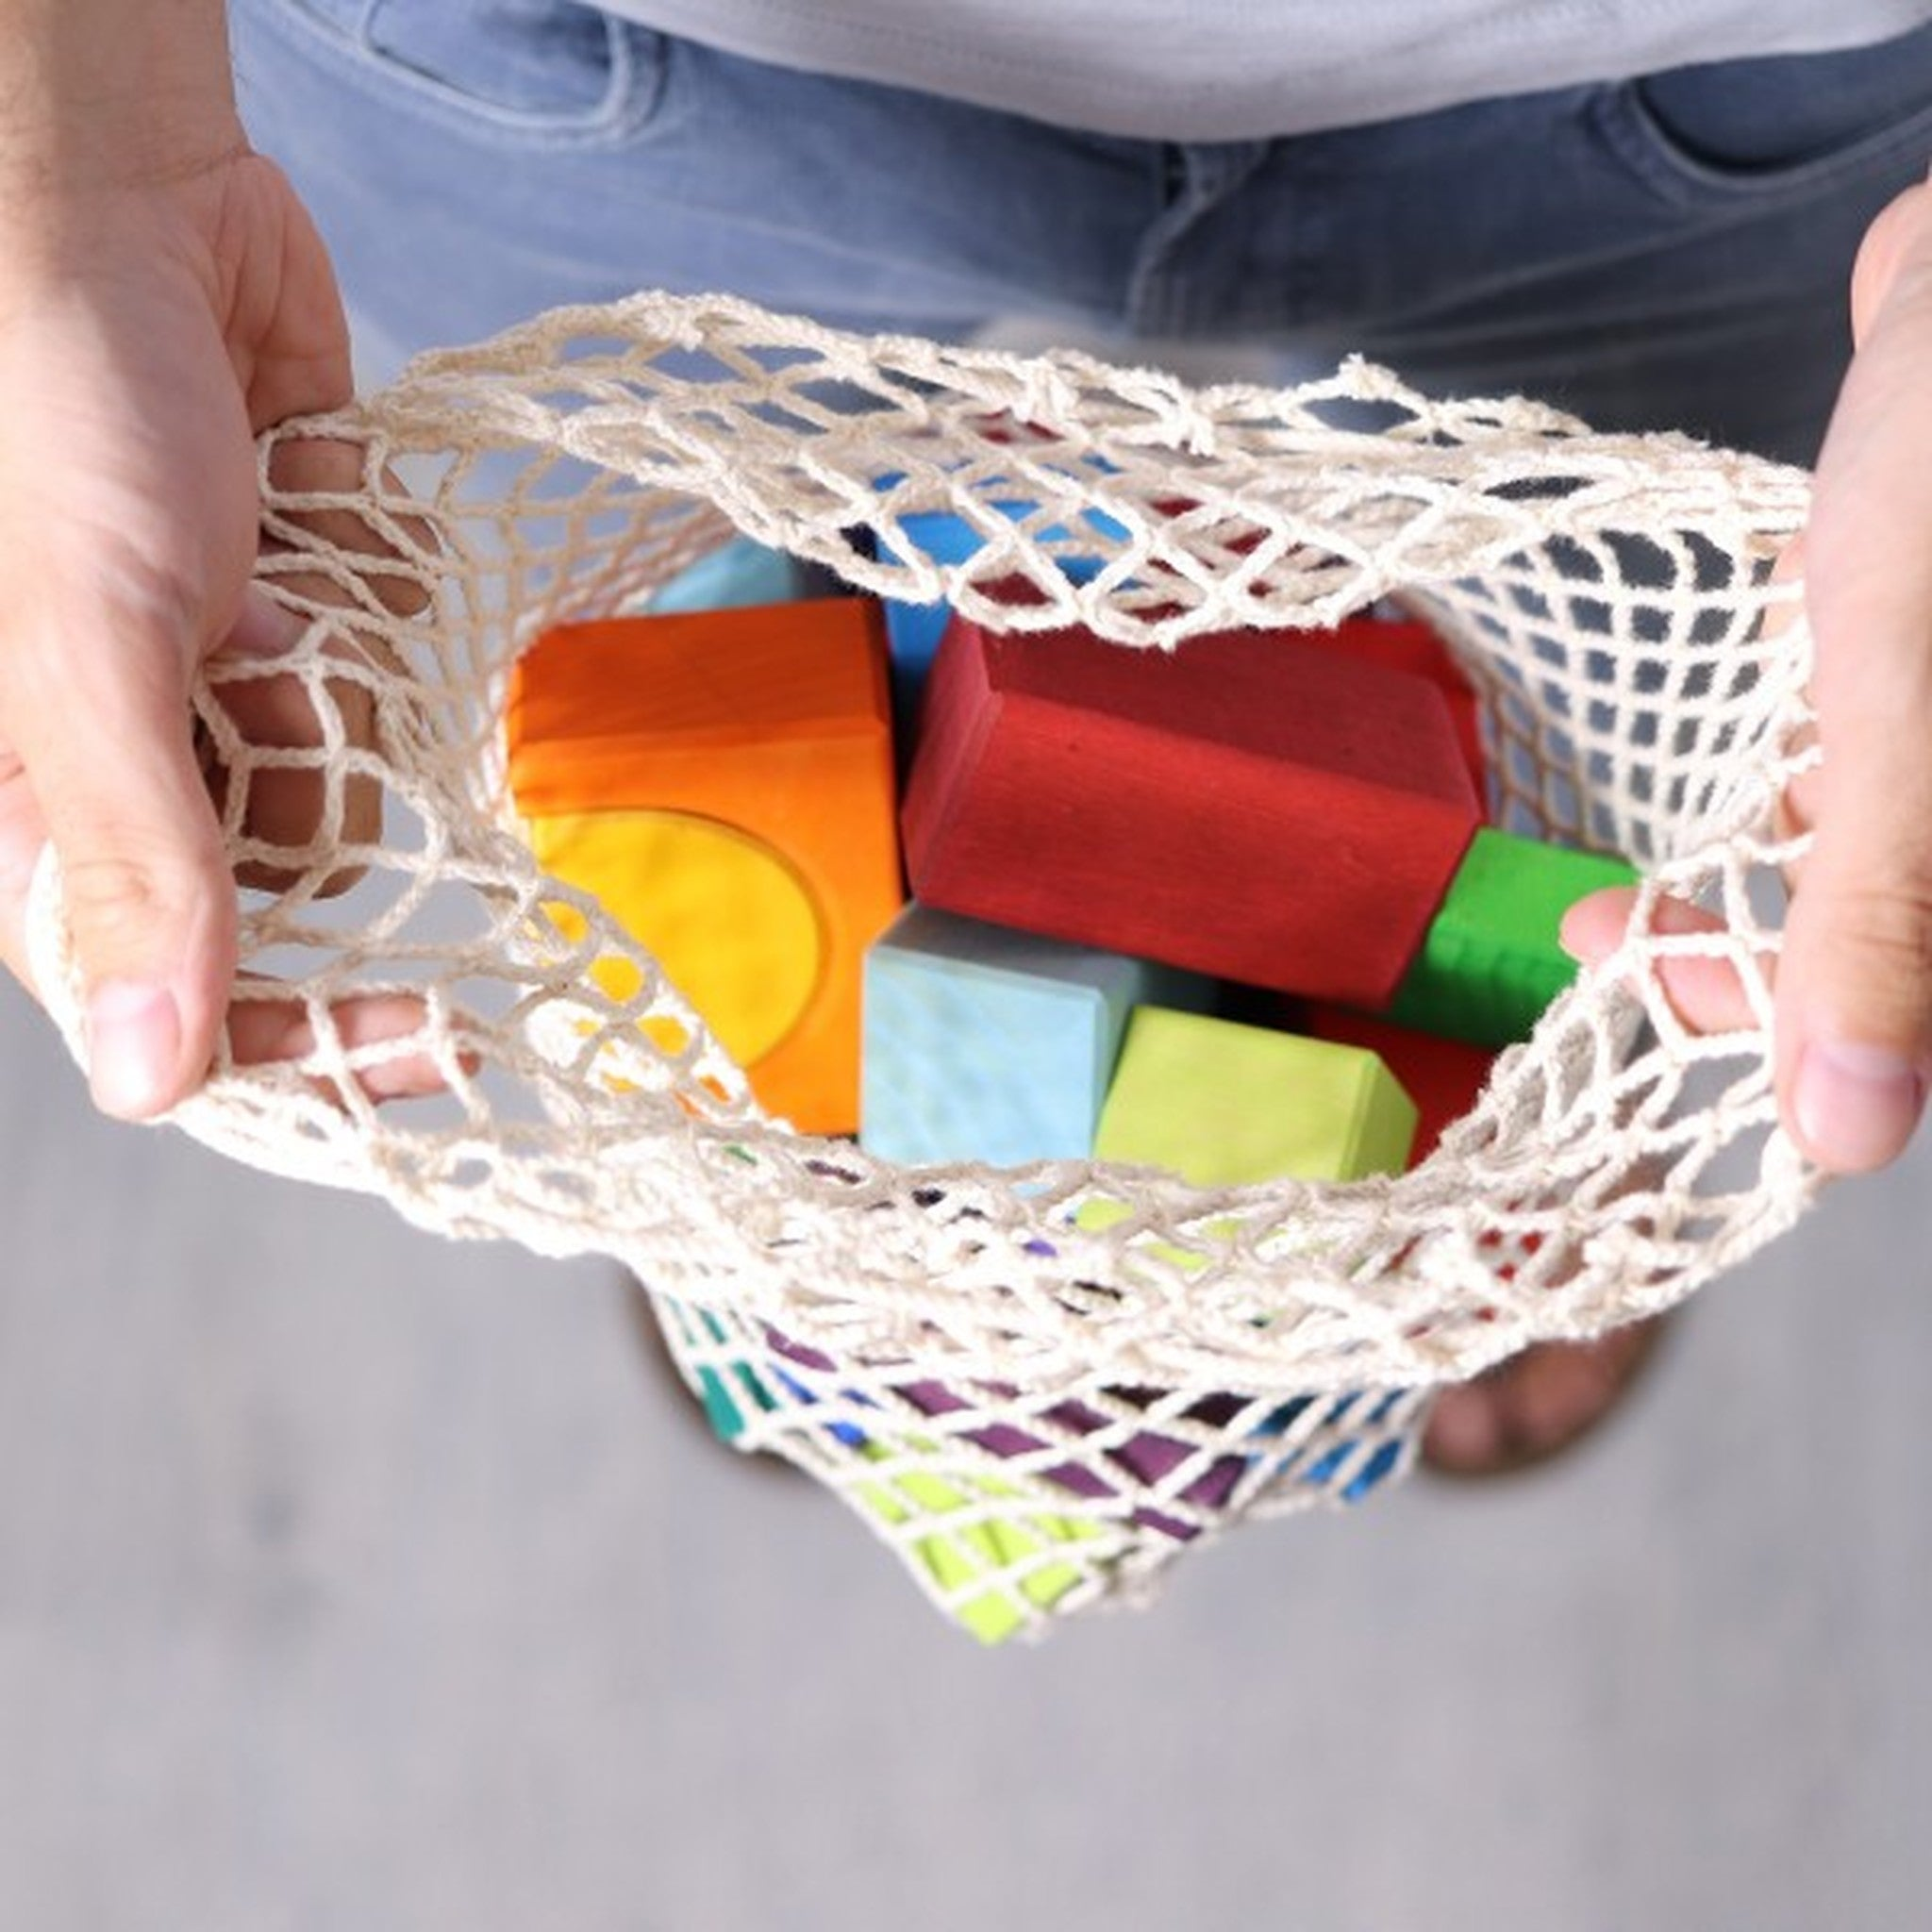 A child holding the open net bag that is storing the blocks on a white background.